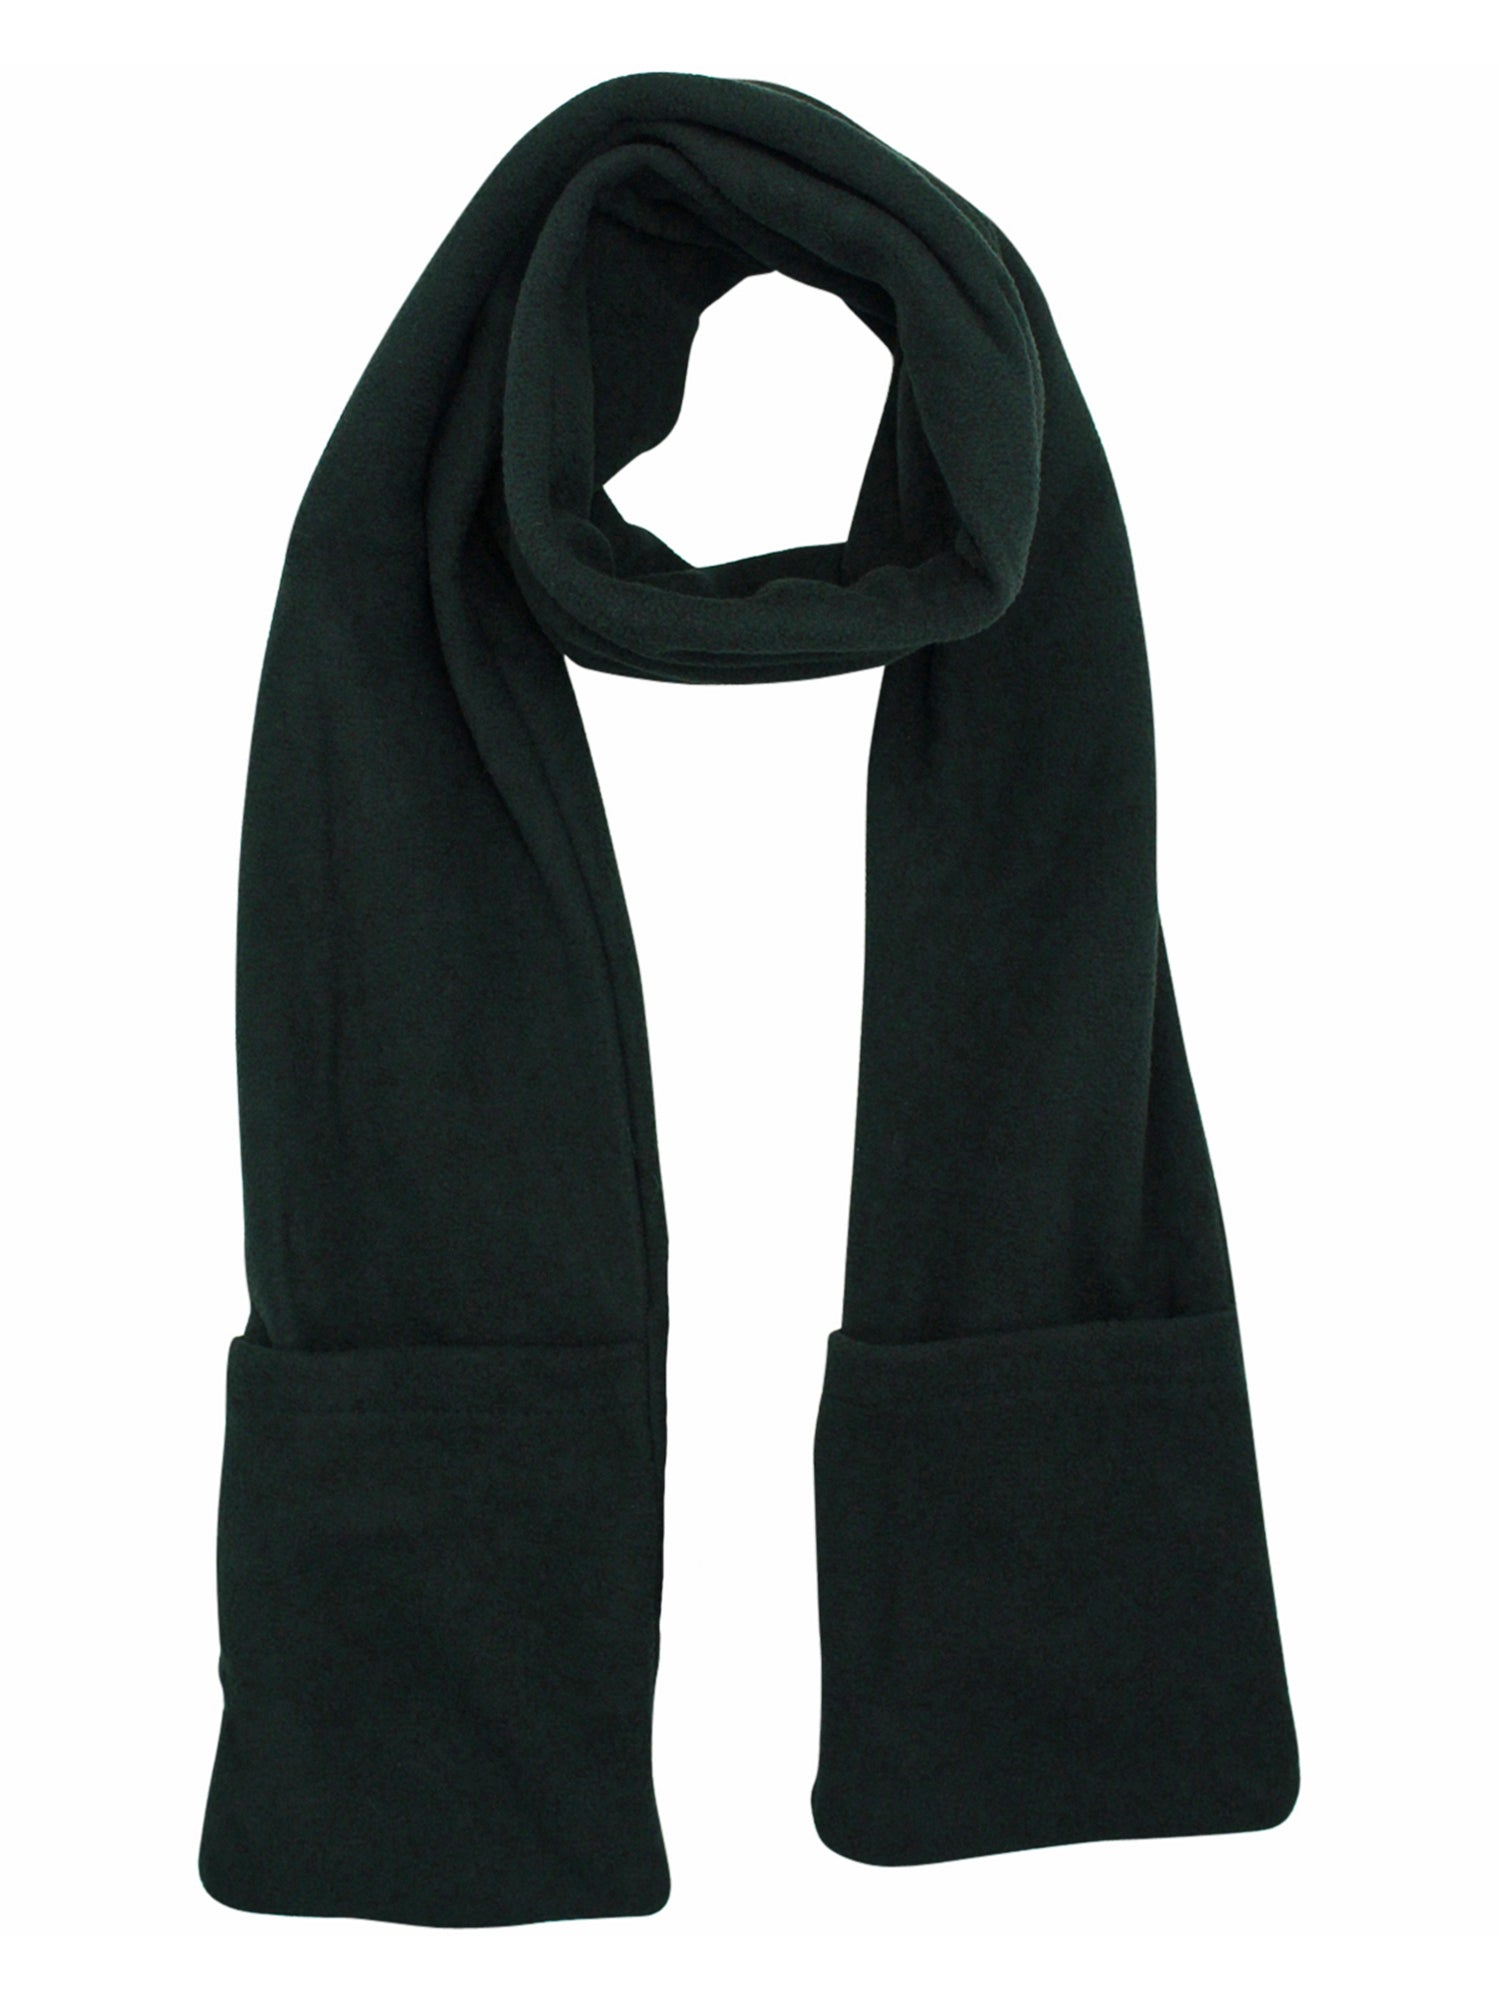 Black Heated Fleece Unisex Winter Scarf With Pockets